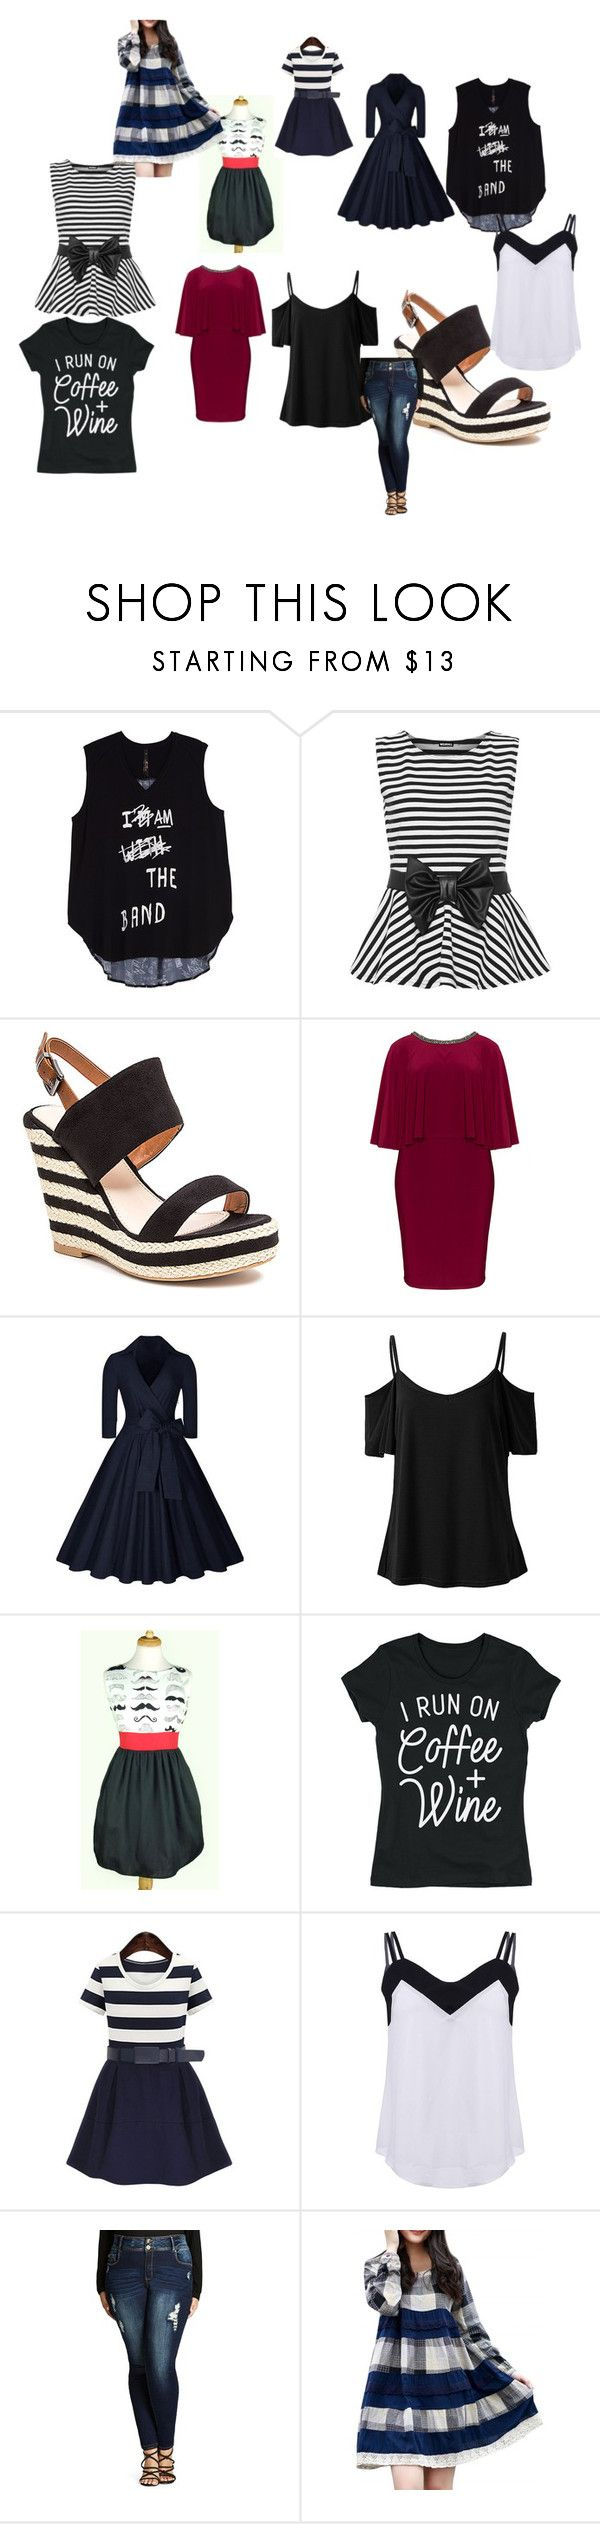 """""""dresses"""" by tahrahholmes ❤ liked on Polyvore featuring Melissa McCarthy Seven7, WearAll, French Blu, Lovedrobe, City Chic and plus size clothing"""